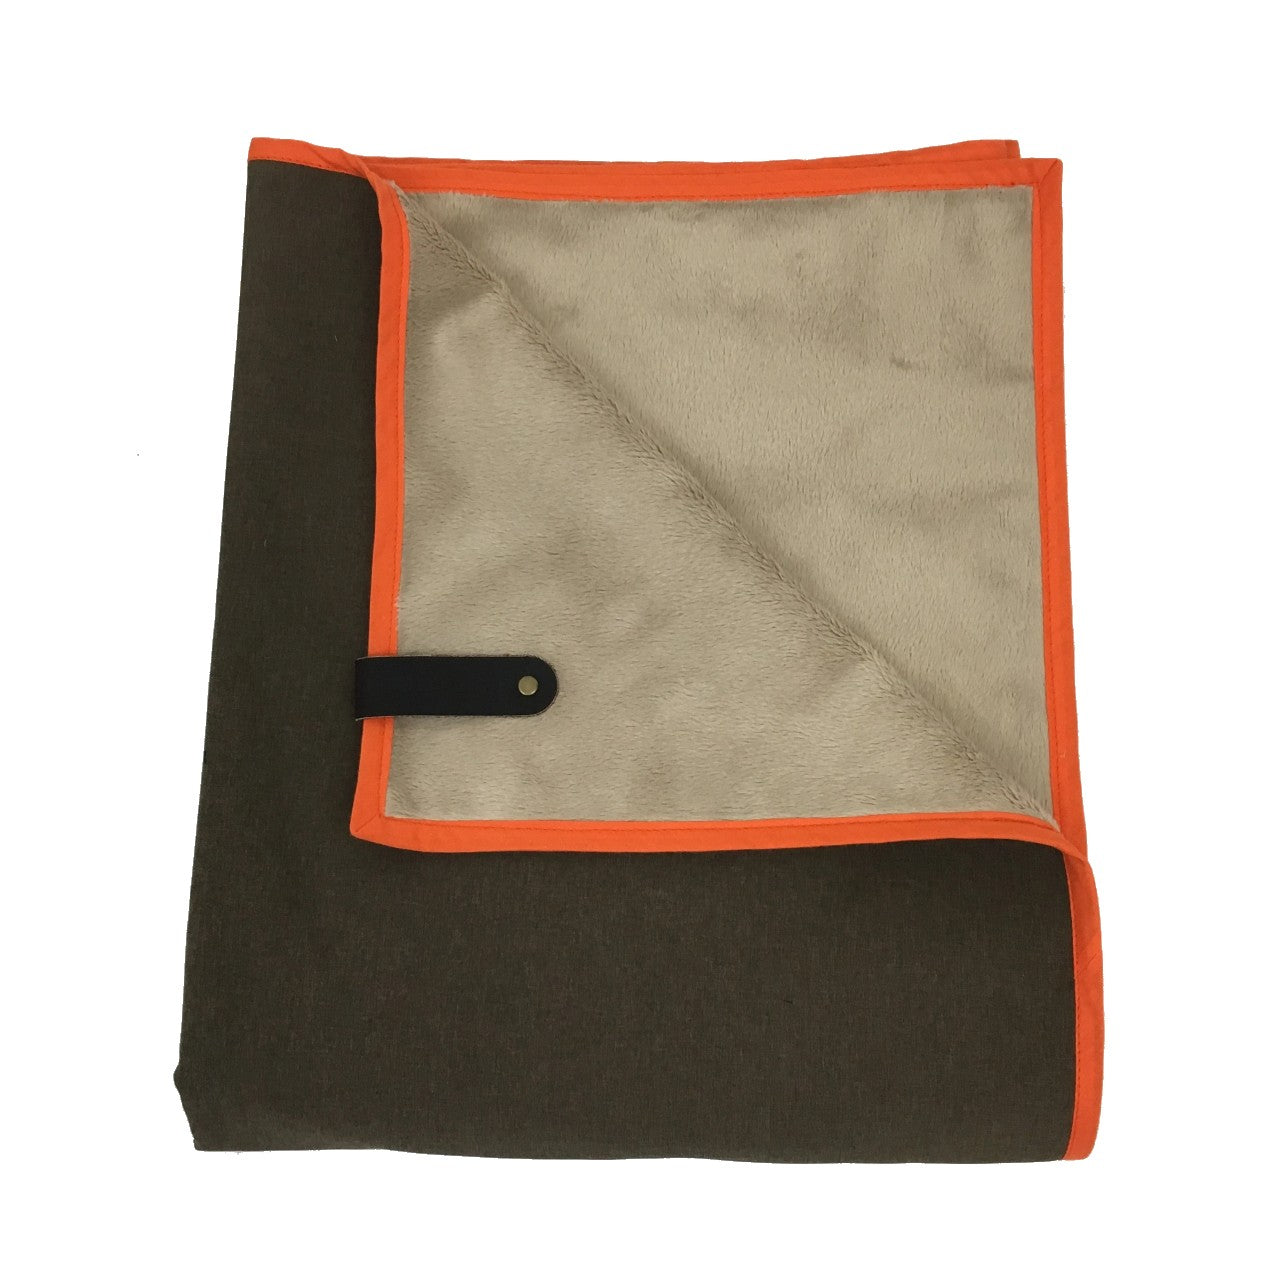 Waterproof Adventure Blanket - Northwest Brown/Orange